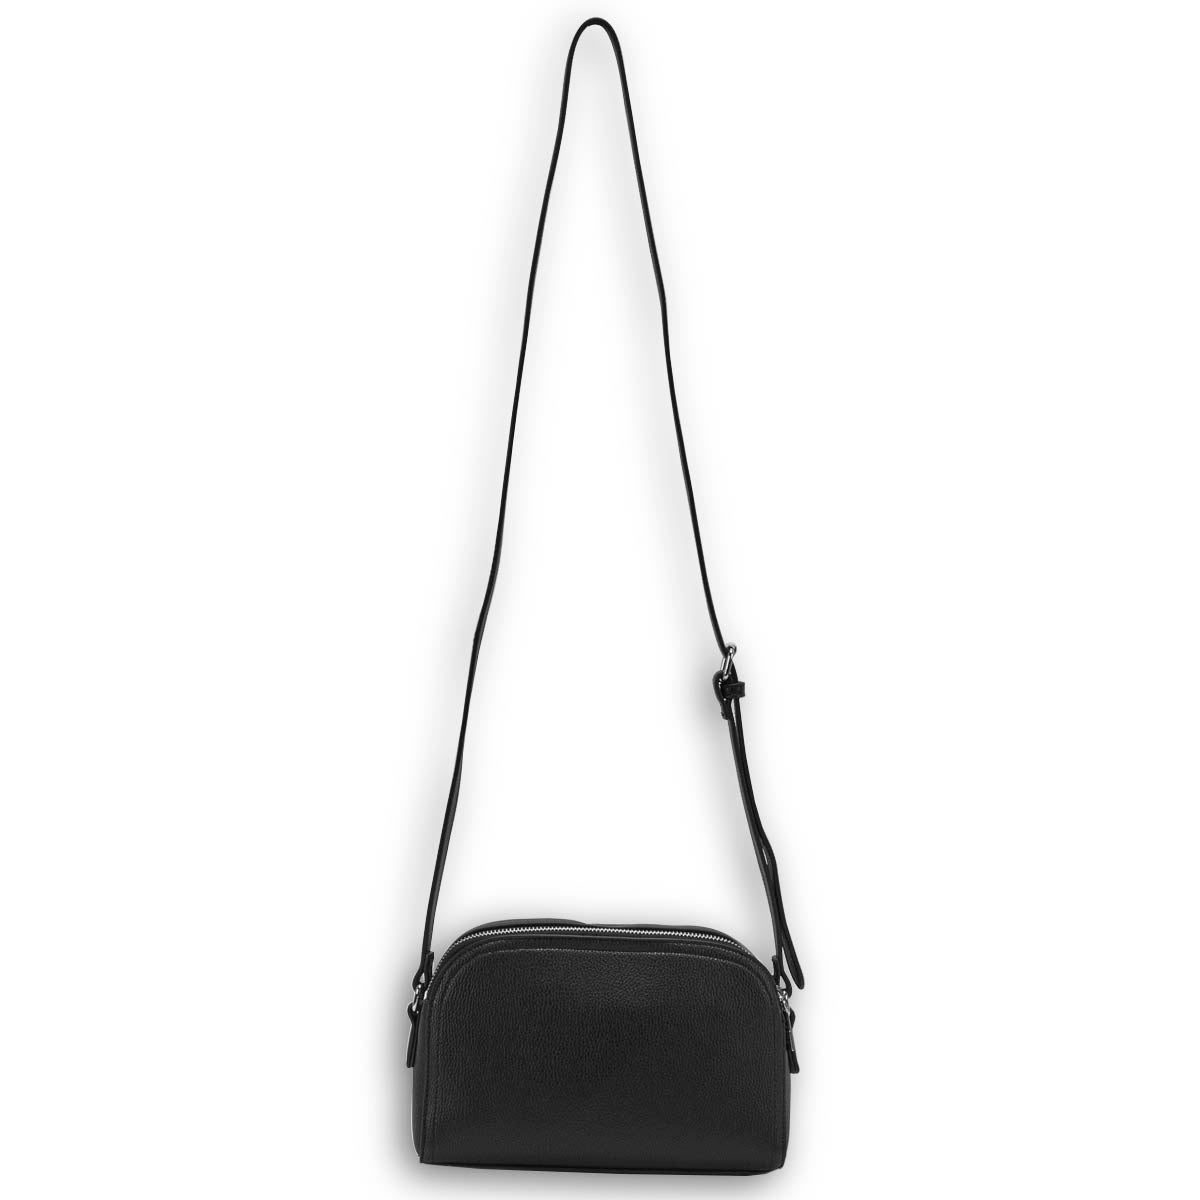 Lds Roots73 black round top crossbody